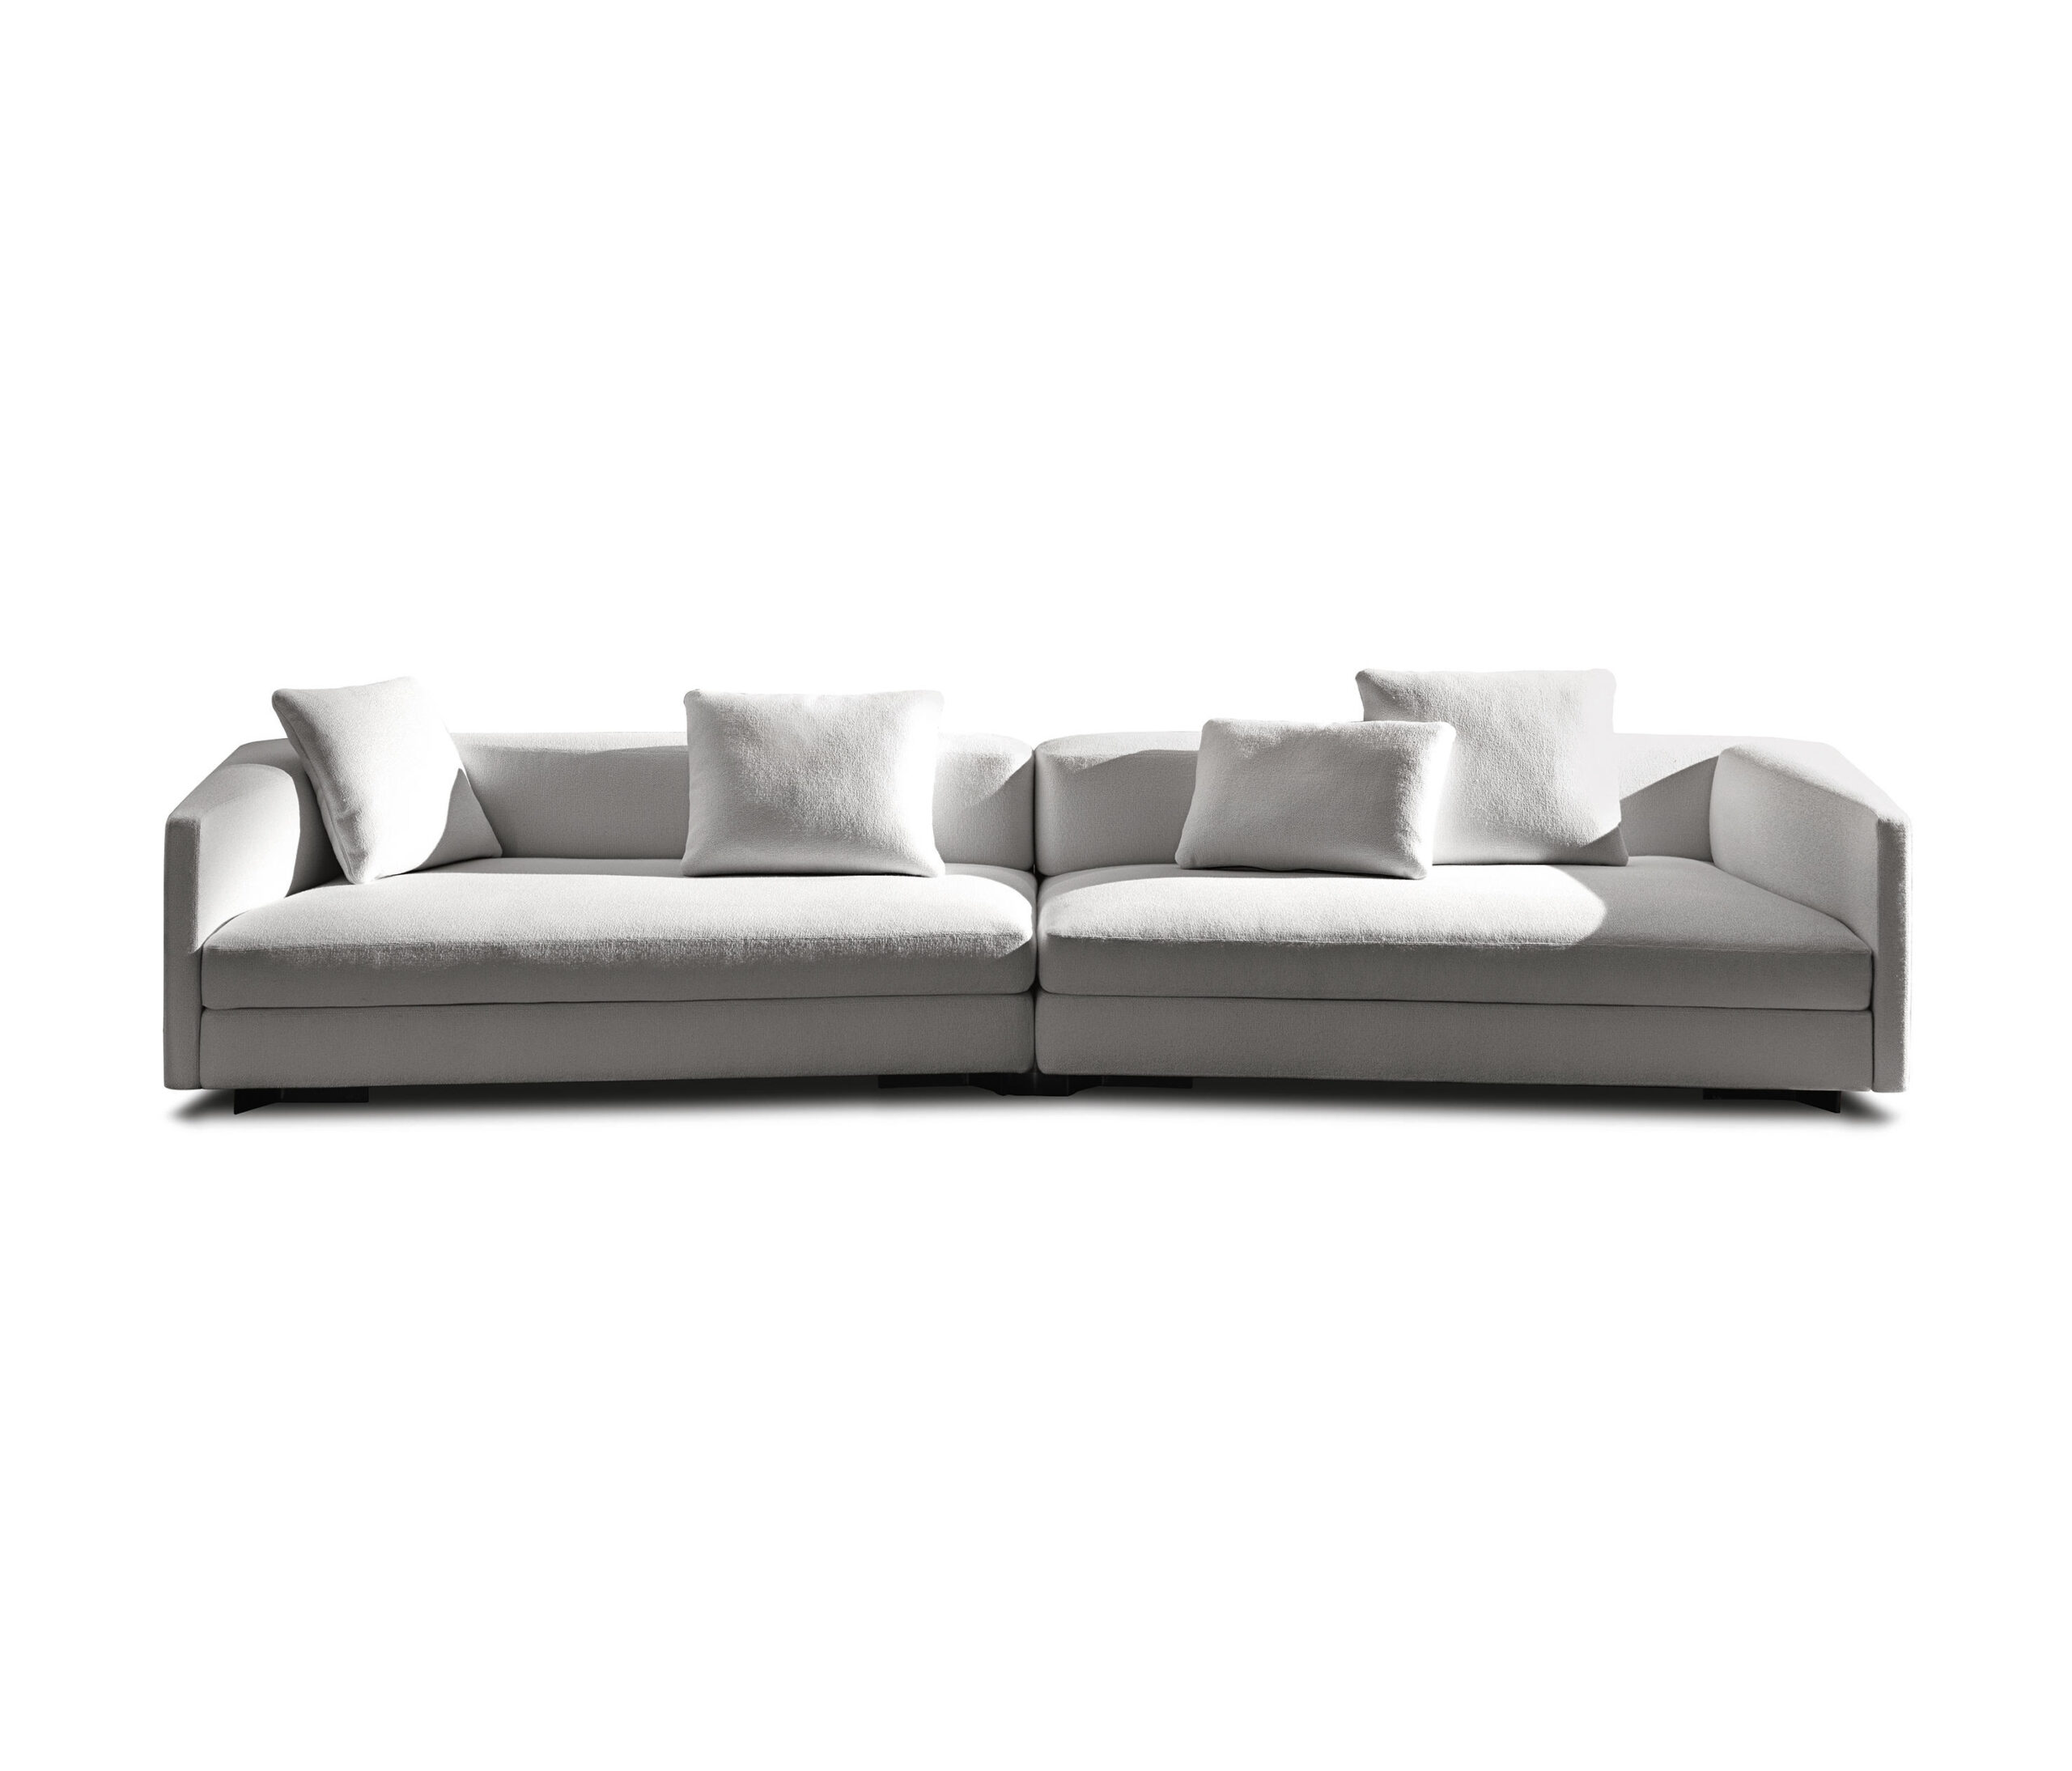 Full Size of Minotti Sofa Used For Sale Freeman Duvet Dimensions List Alexander Indiana Size Hamilton Sleeper Uk Hülsta Machalke Boxspring Mit Schlaffunktion Natura Sofa Minotti Sofa